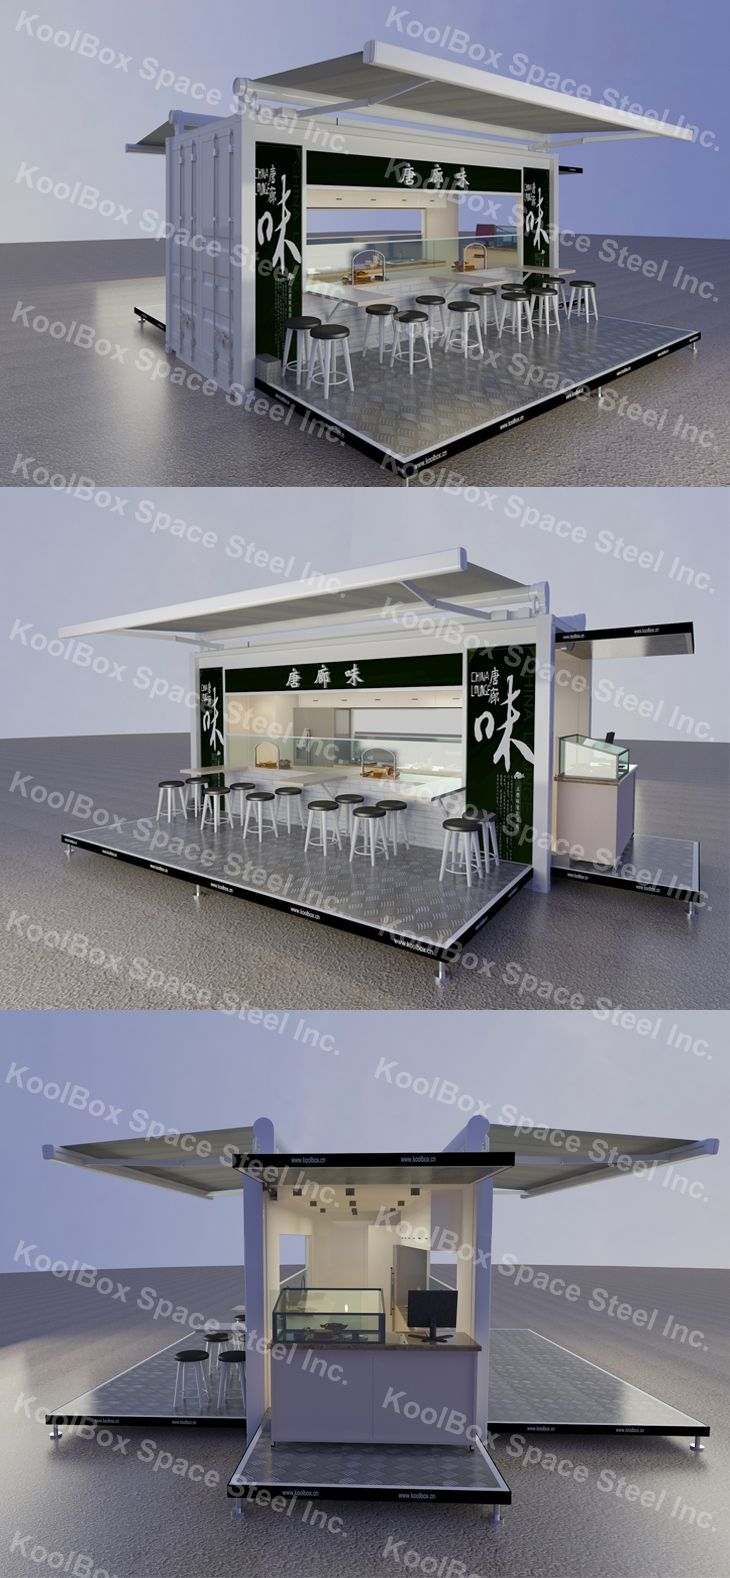 Image result for modular rolling food prep counter